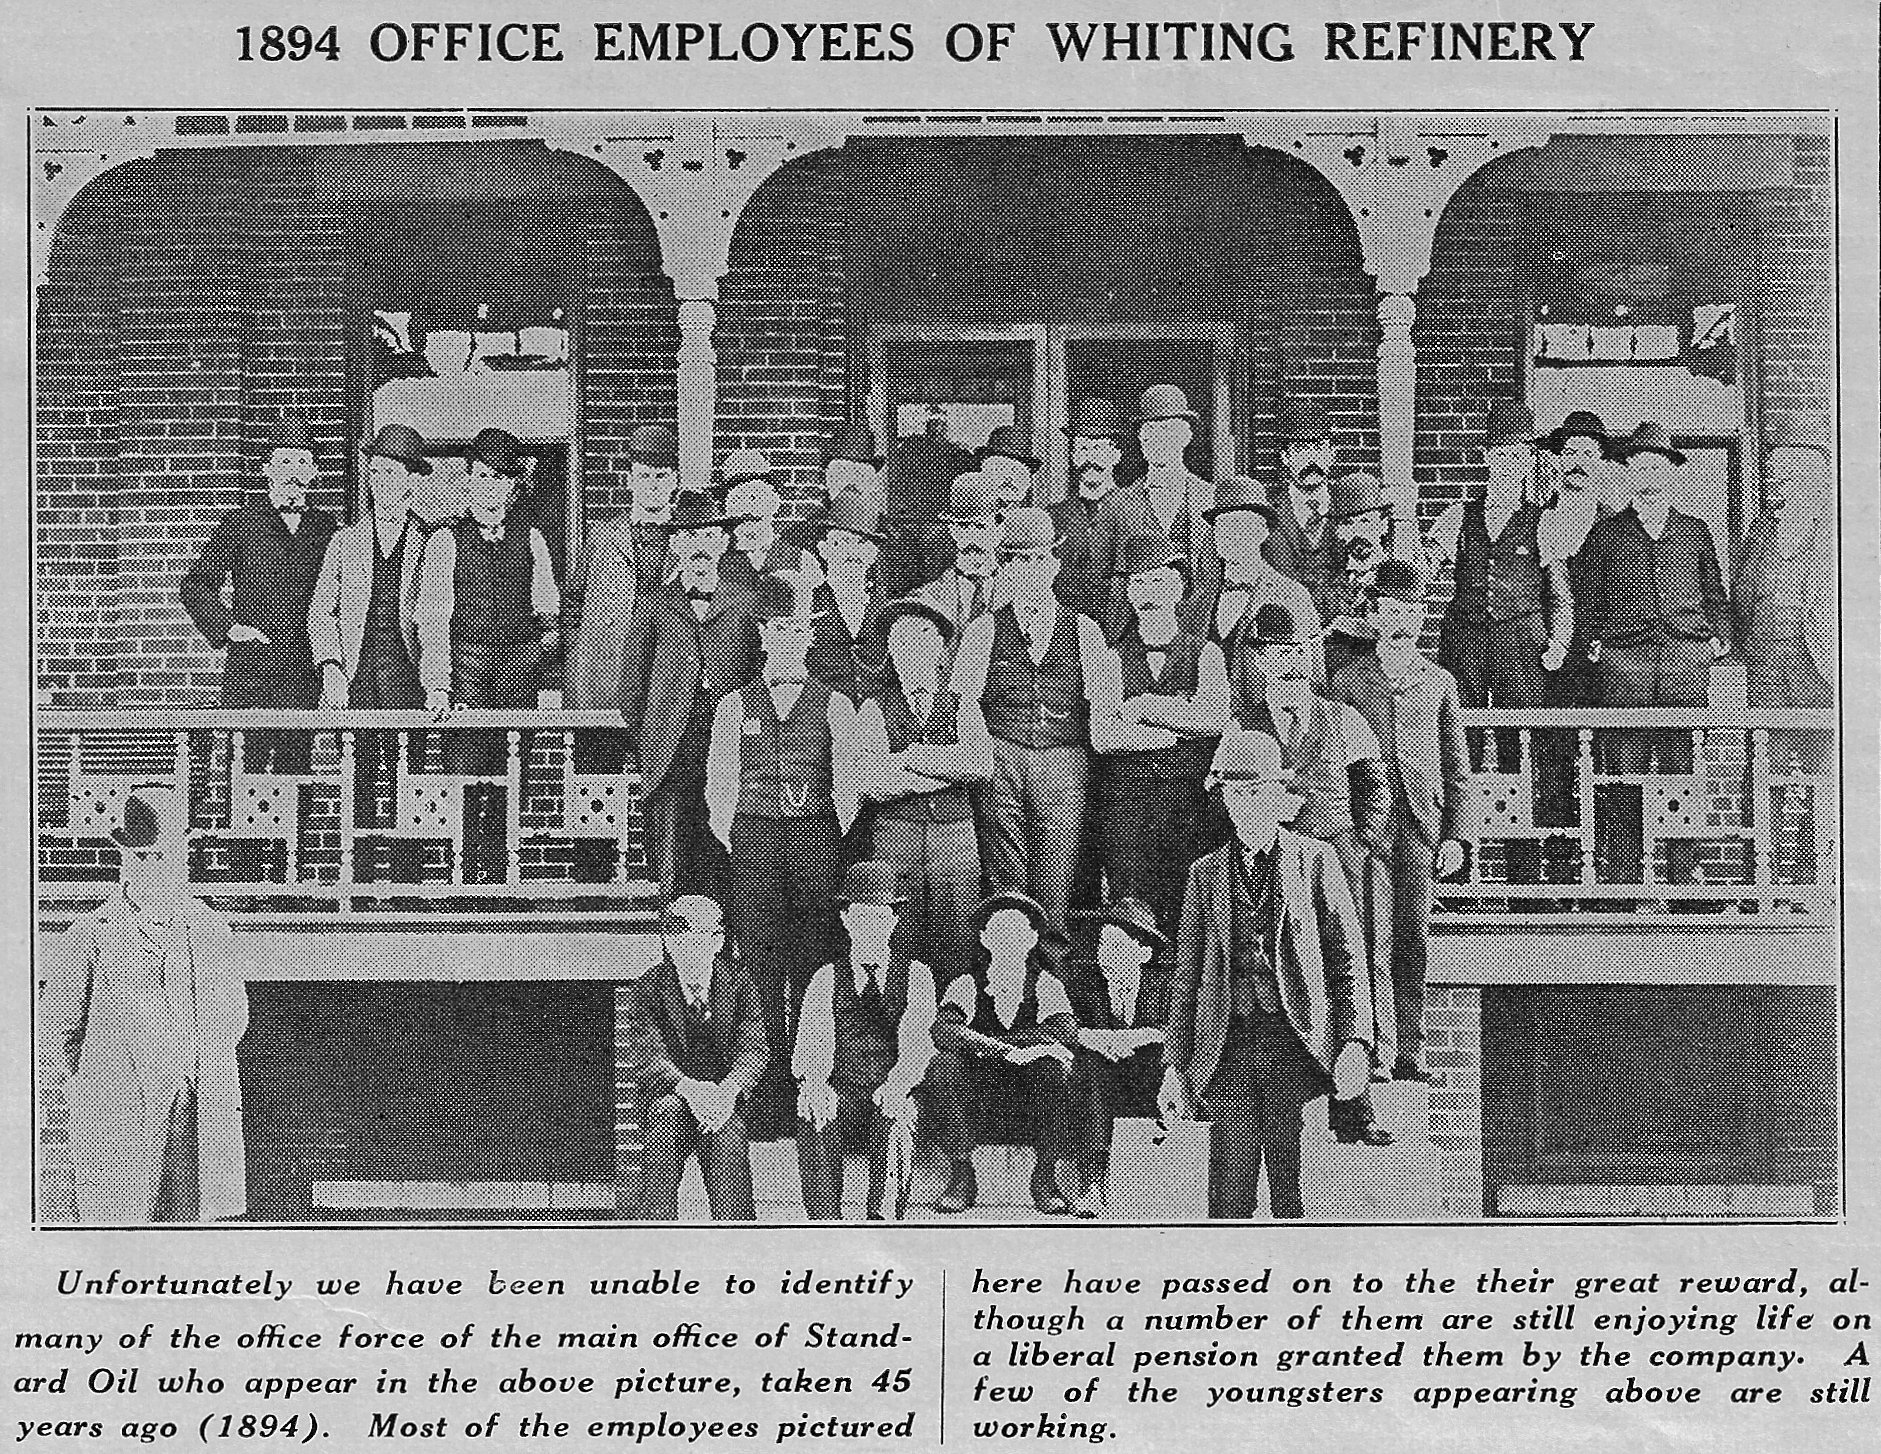 Historical Ed. - Refinery Employees.jpg